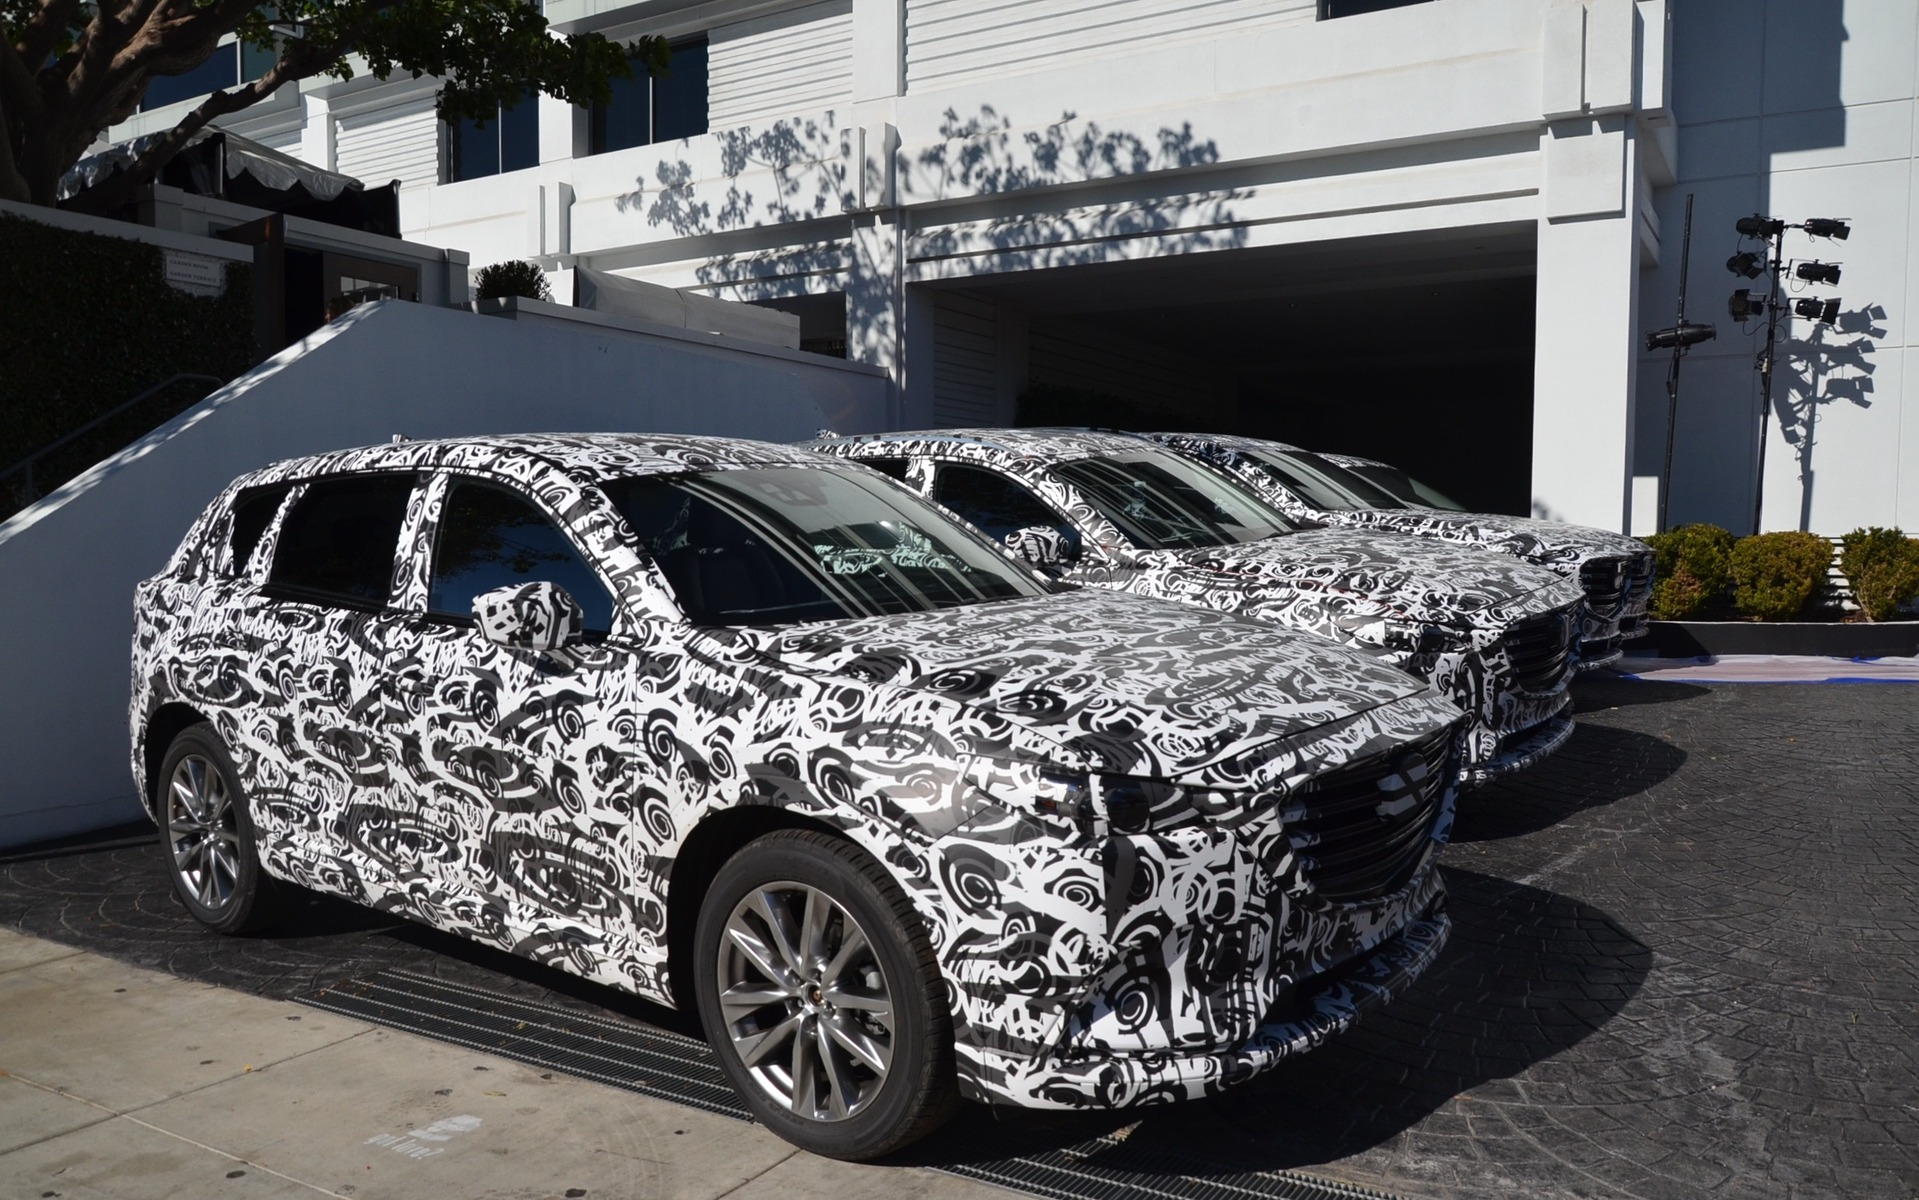 2016 Mazda CX-9 - camouflaged prototypes in Los Angeles